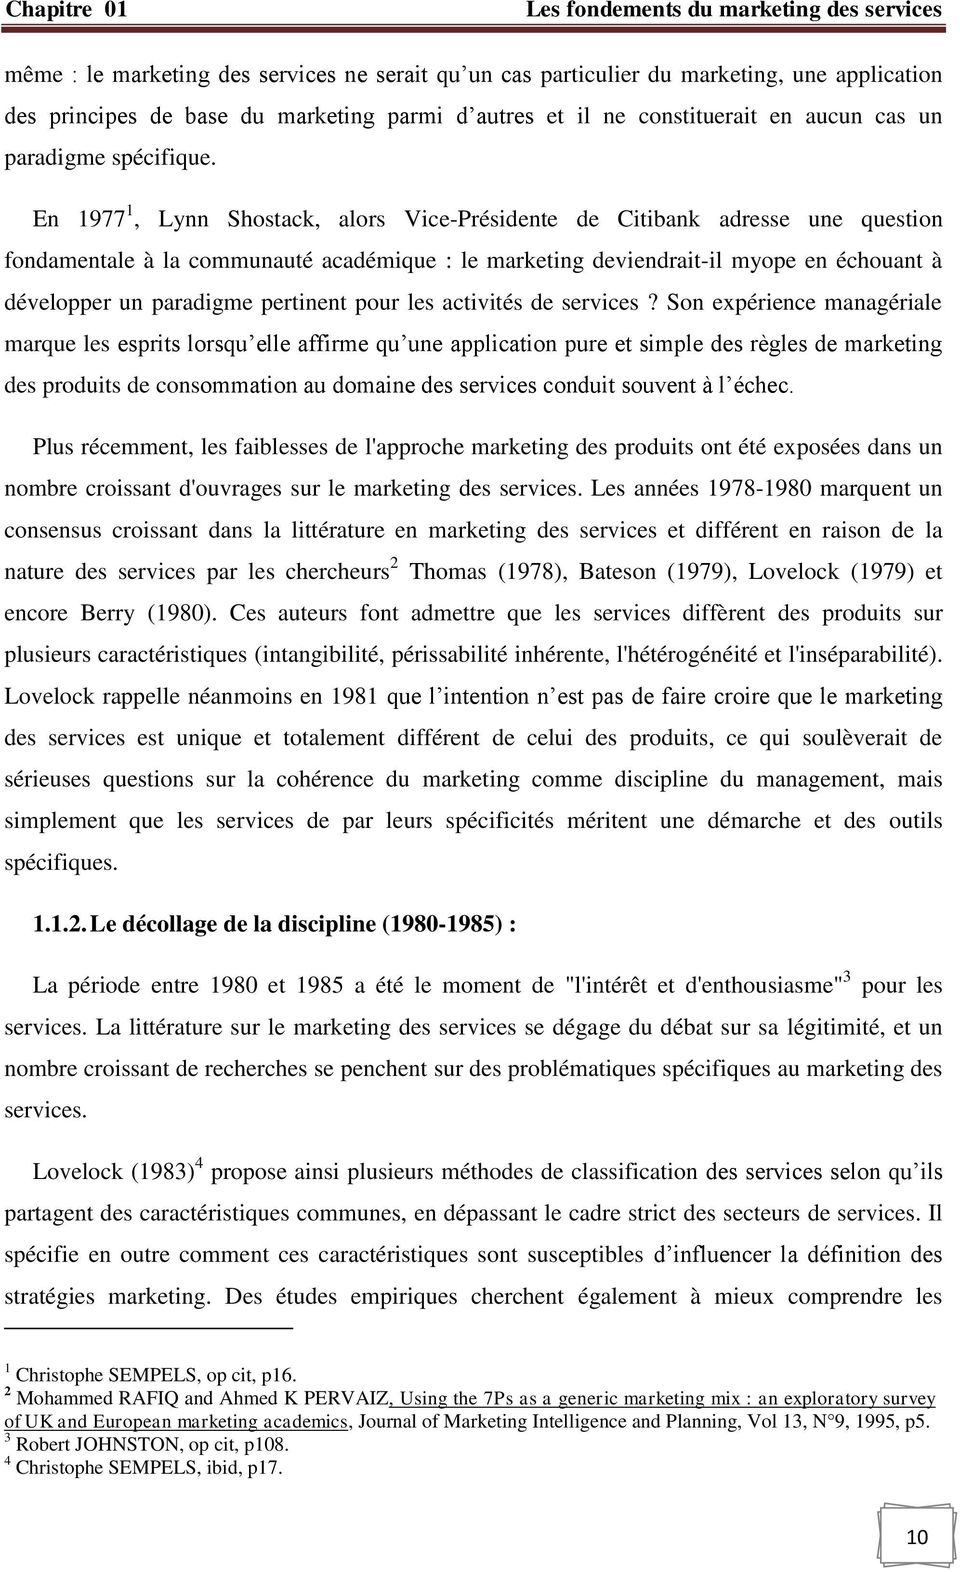 7ps of telecommunication A literature review of marketing decision-  telecommunication the cellular environment is a service  7ps of the extended.